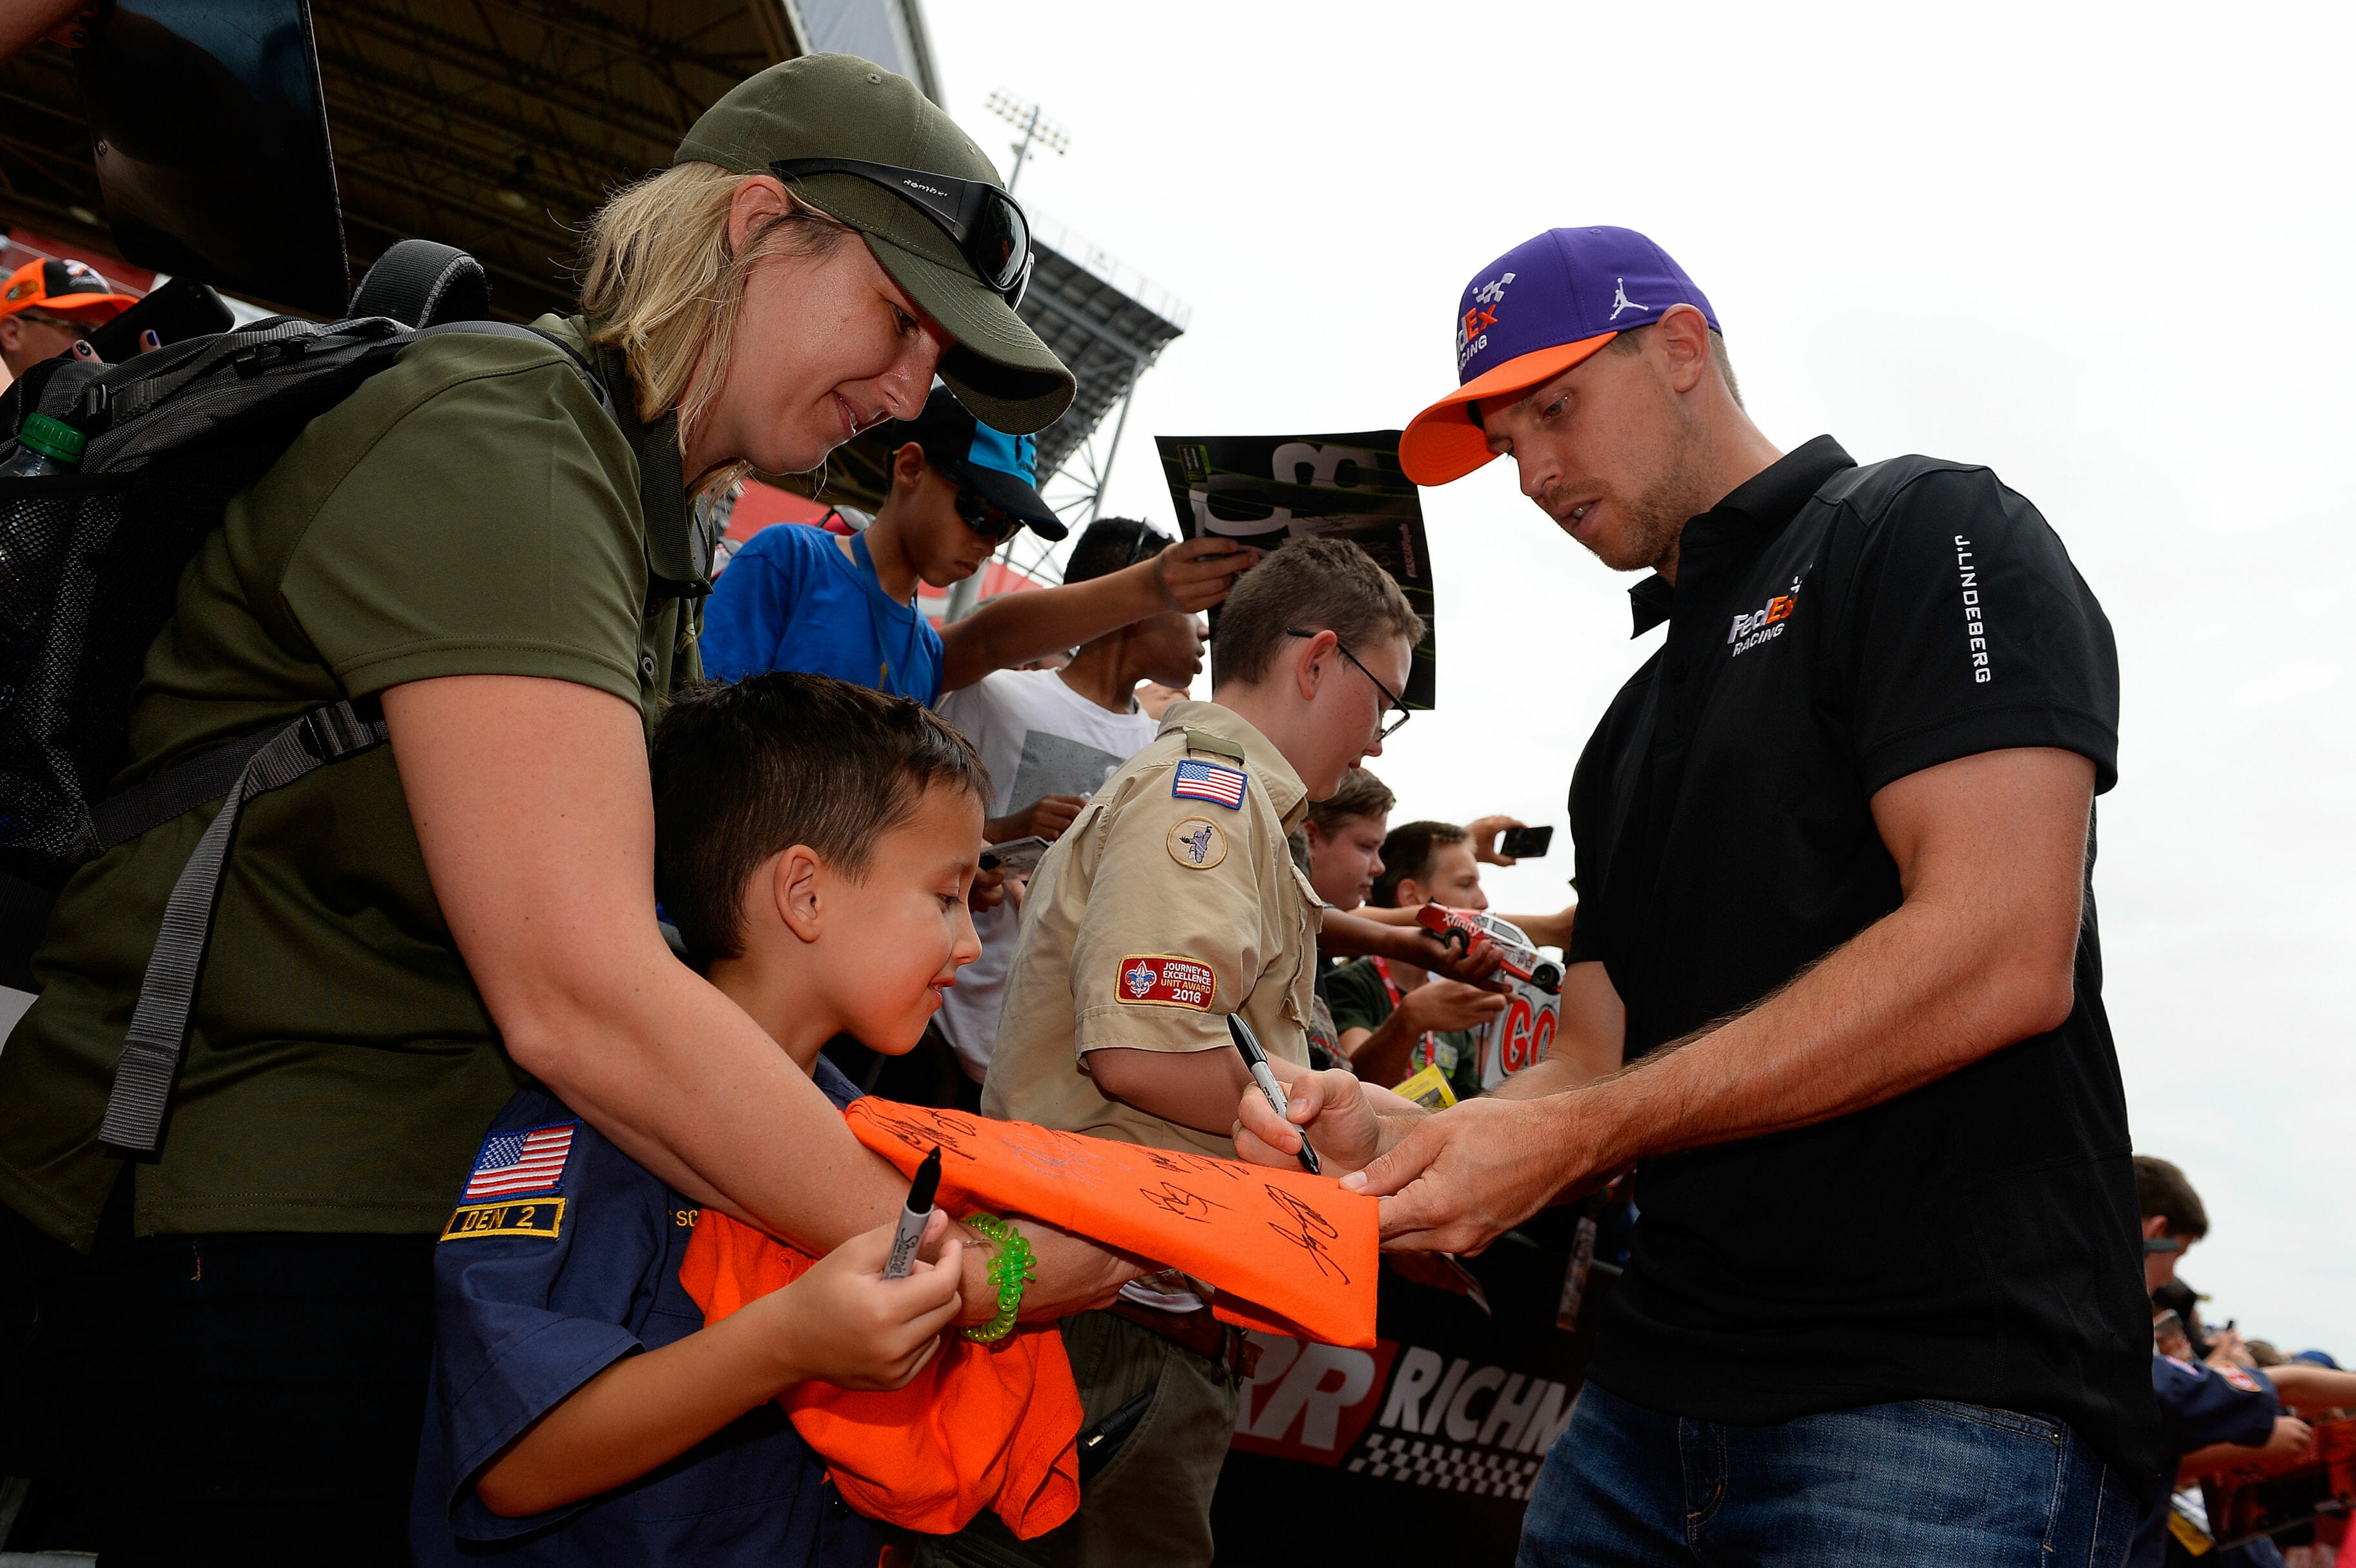 Denny Hamlin signs autographs for NASCAR fans at Richmond Raceway